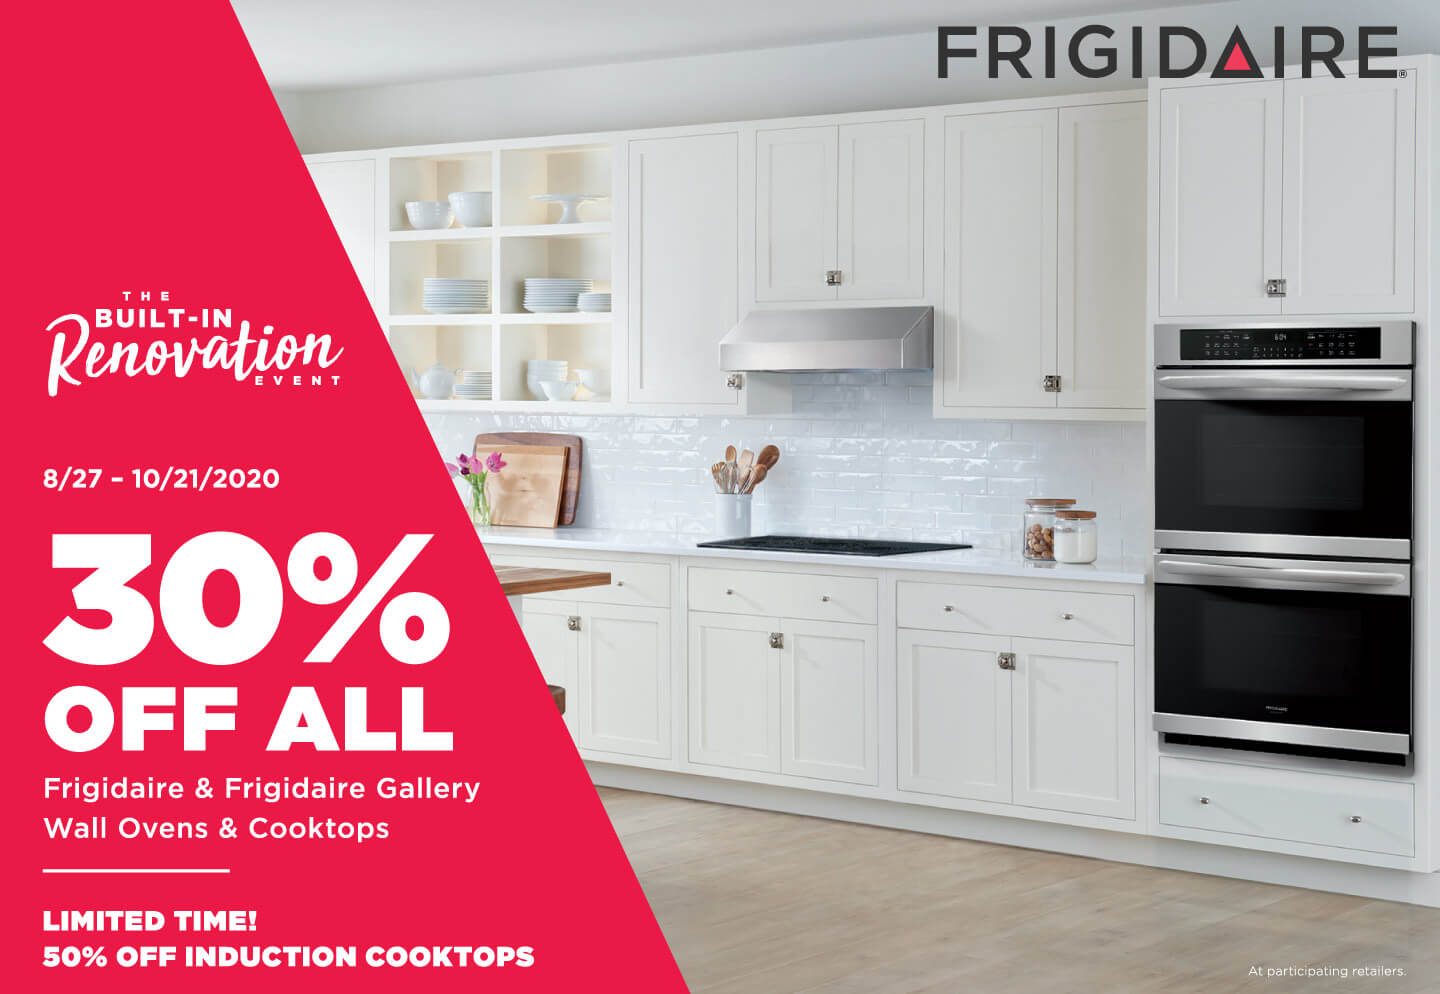 The Frigidaire Built-In Renovation Event